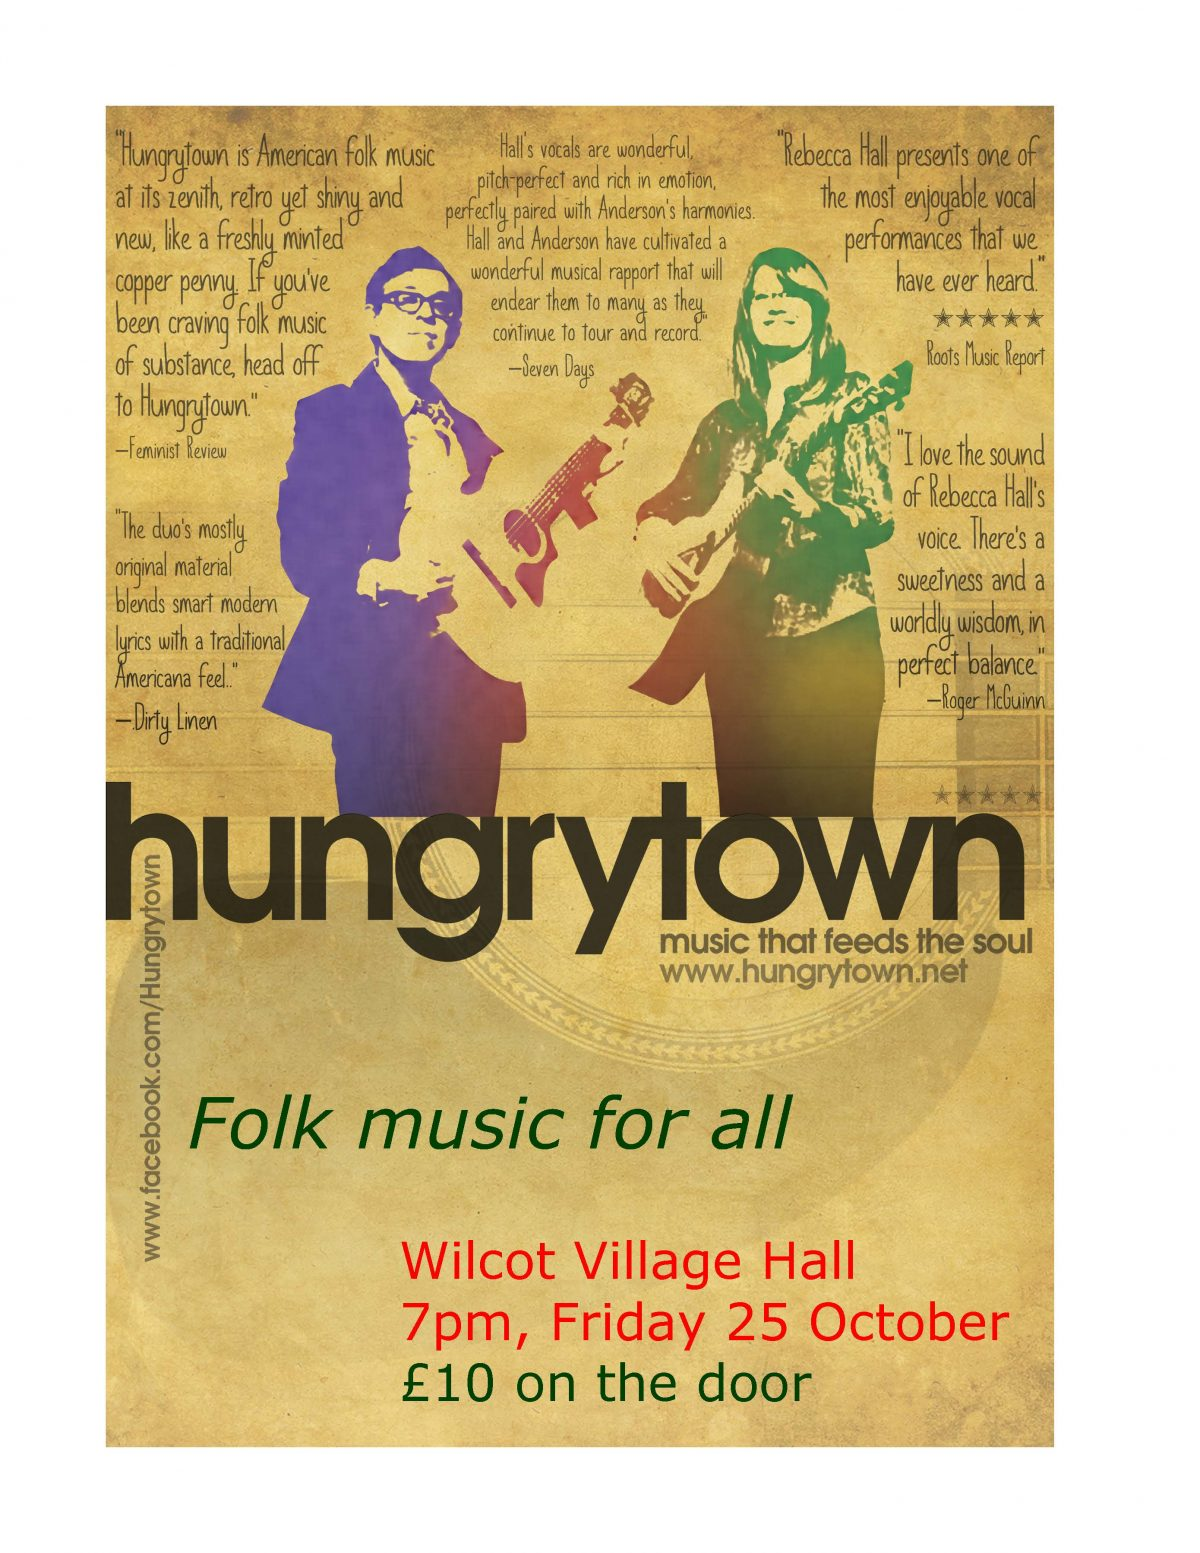 Wiltcot Village Hall Hungrytown October 2019 Event Poster